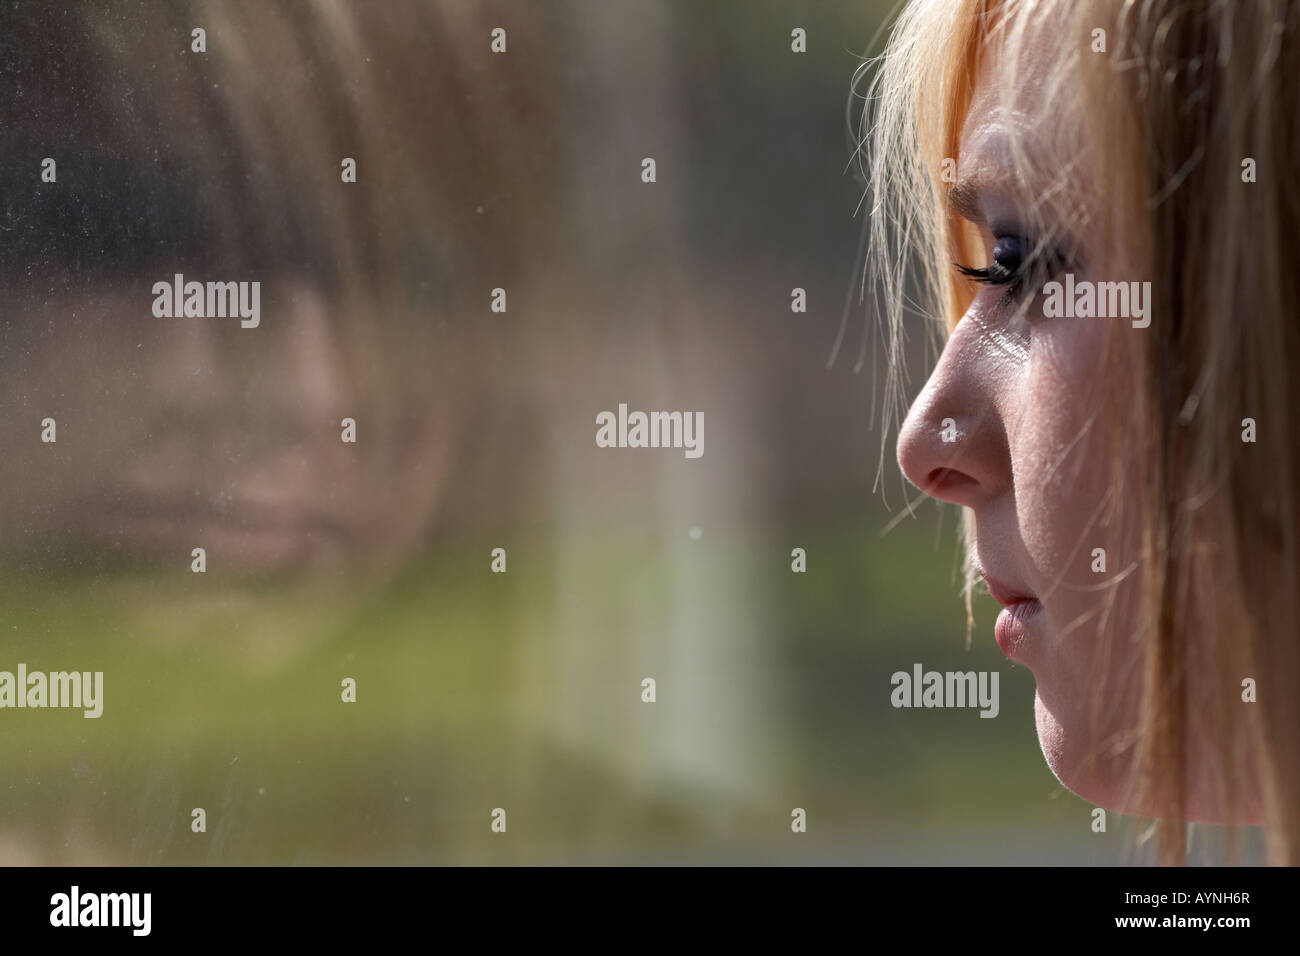 young blonde haired teenage woman staring blankly out through dirty window with reflection - Stock Image